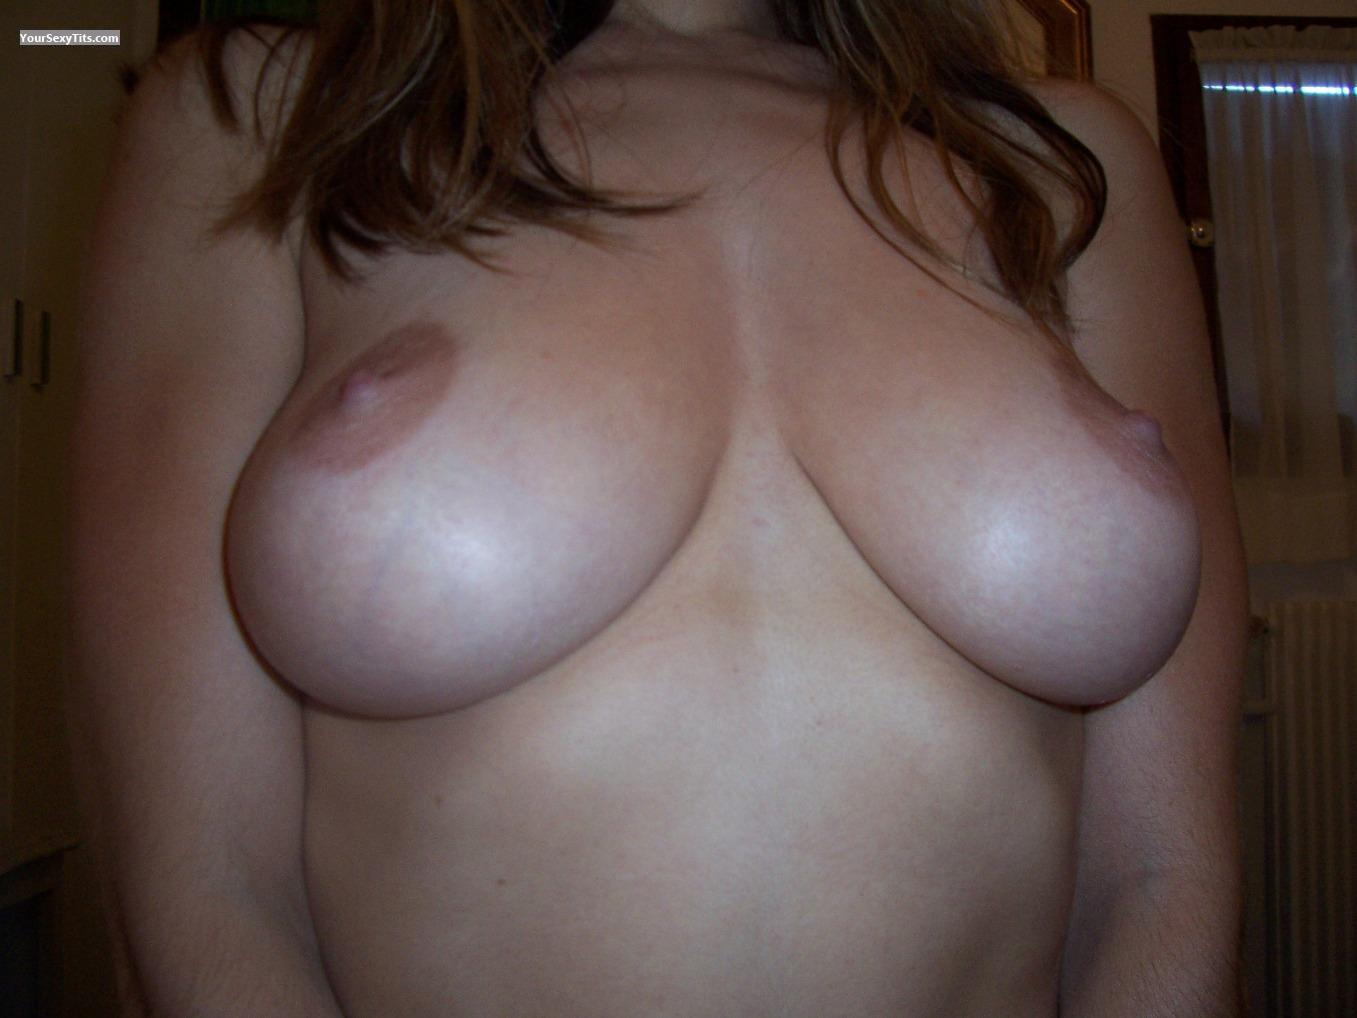 Tit Flash: Big Tits - Jeanett from Belgium